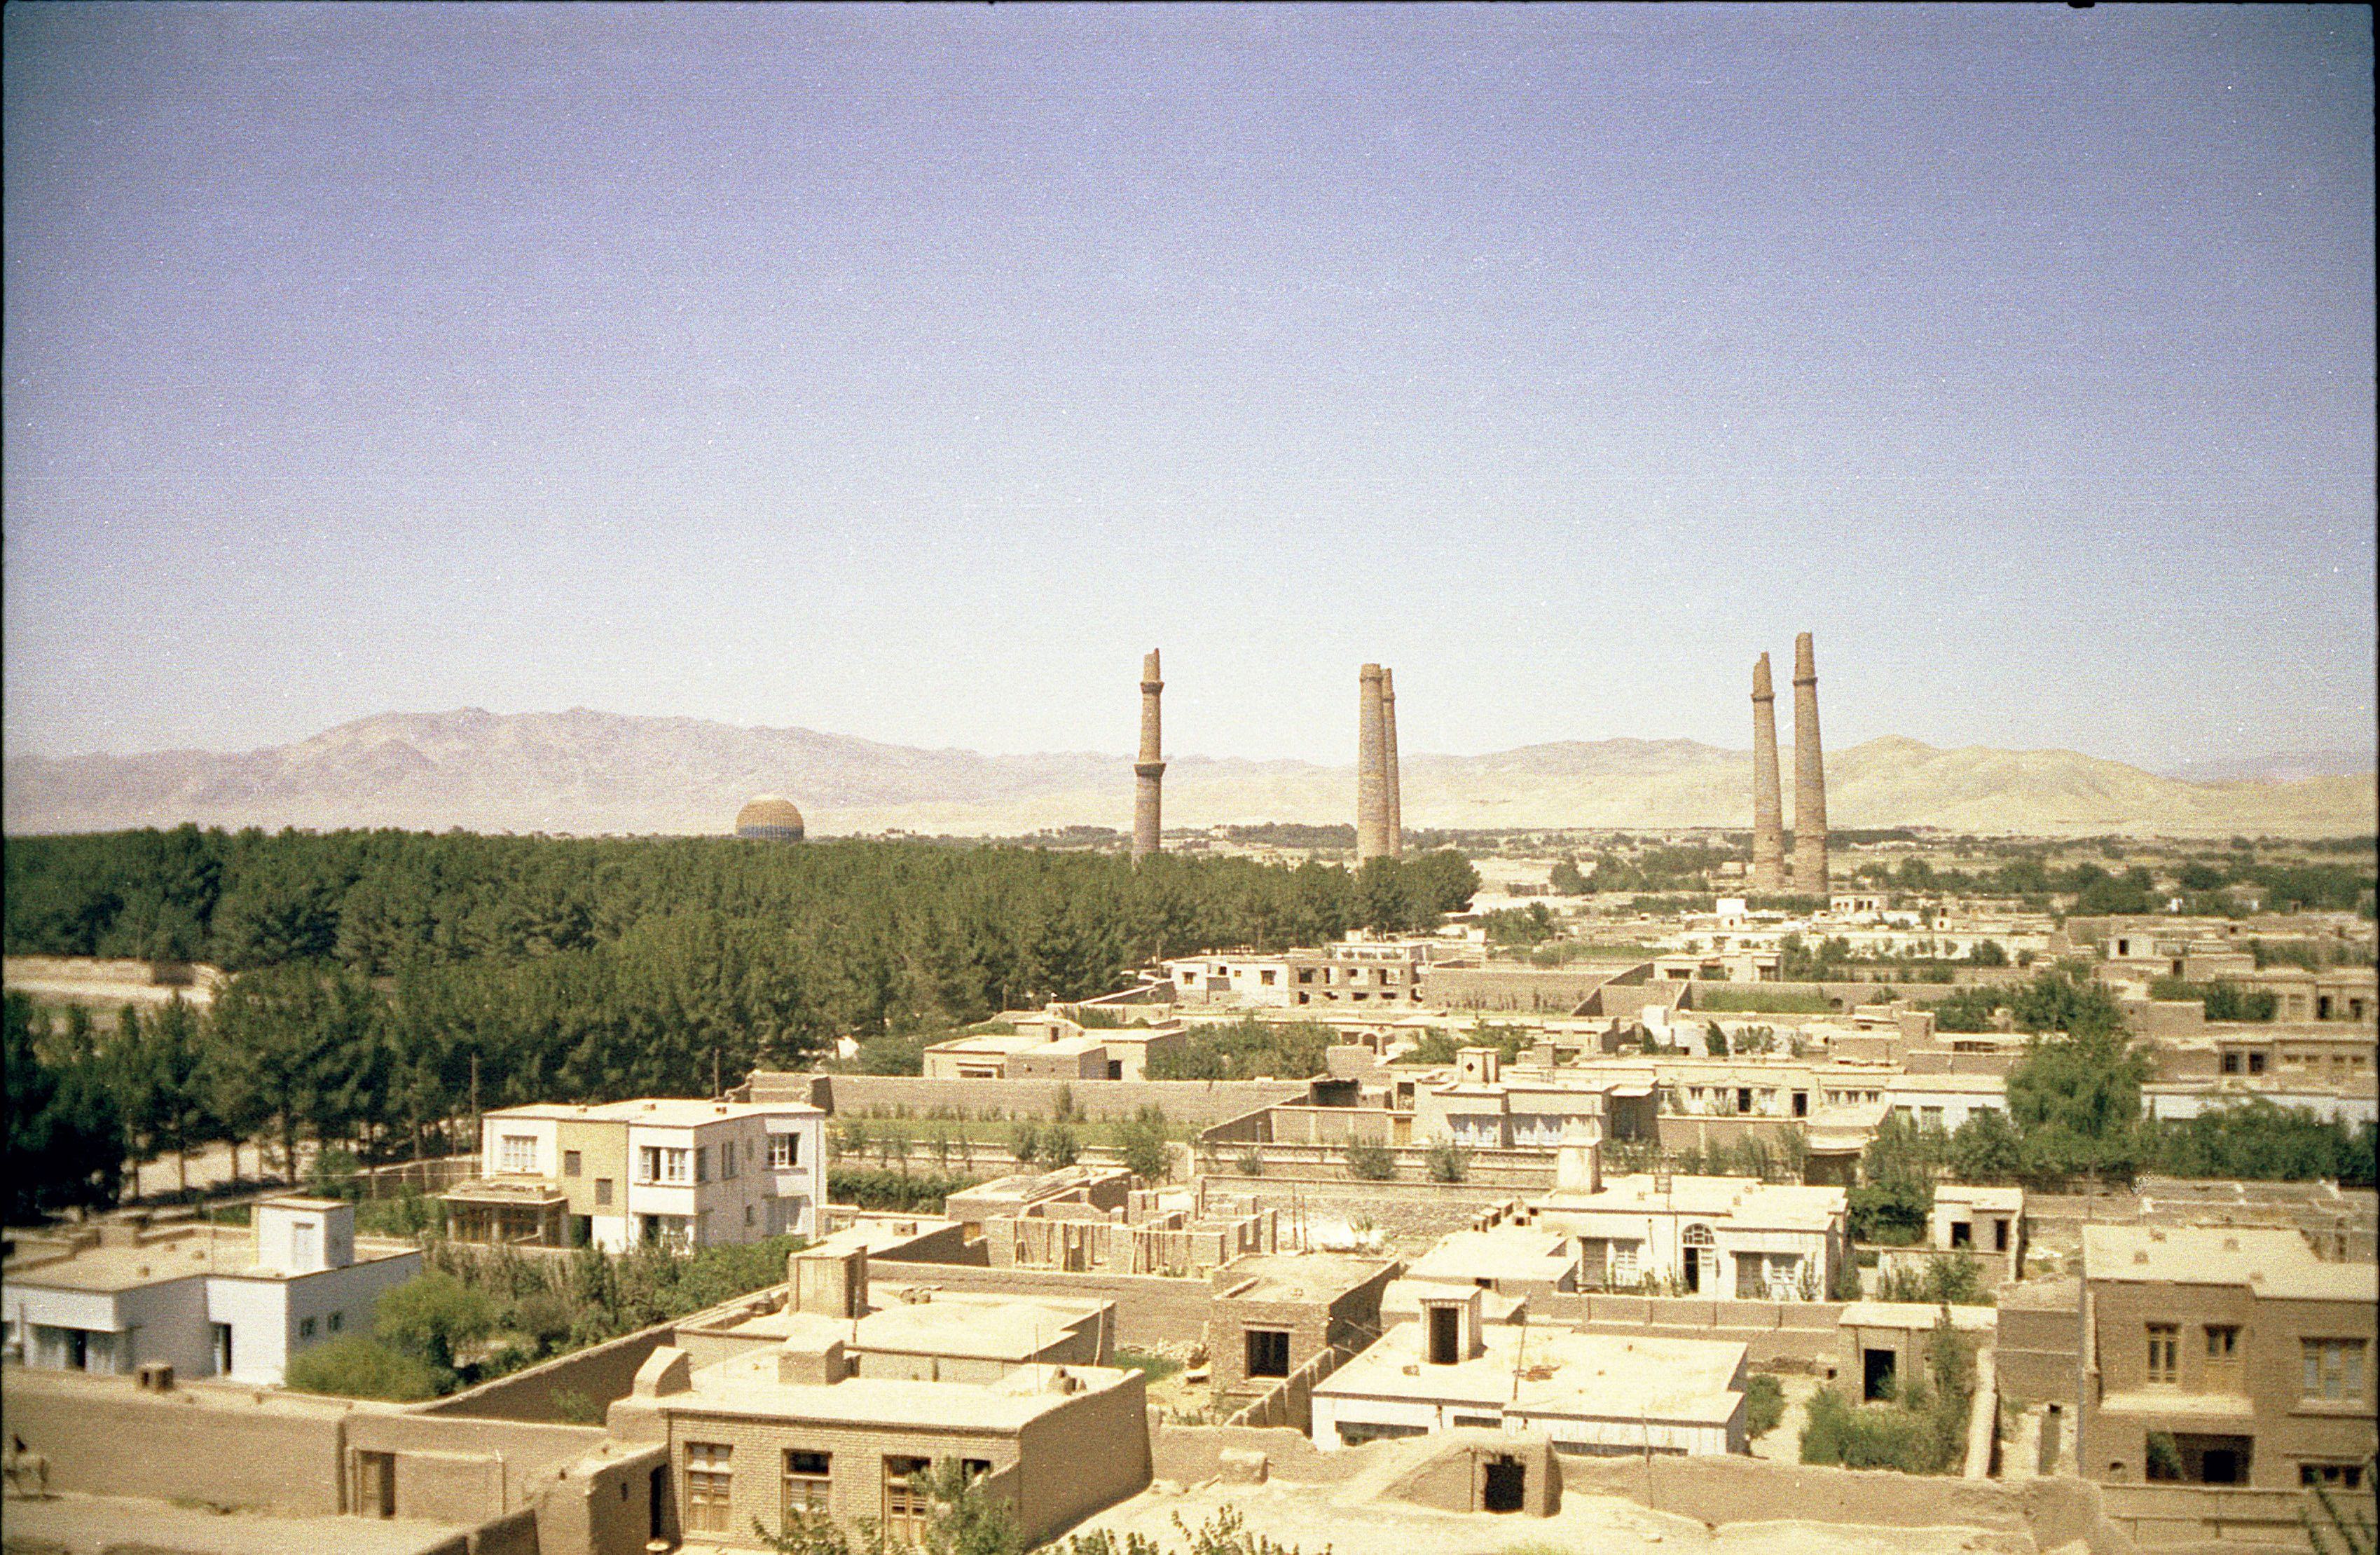 Historical Herat Afghanistan In 1960 This Is What Is Would Look